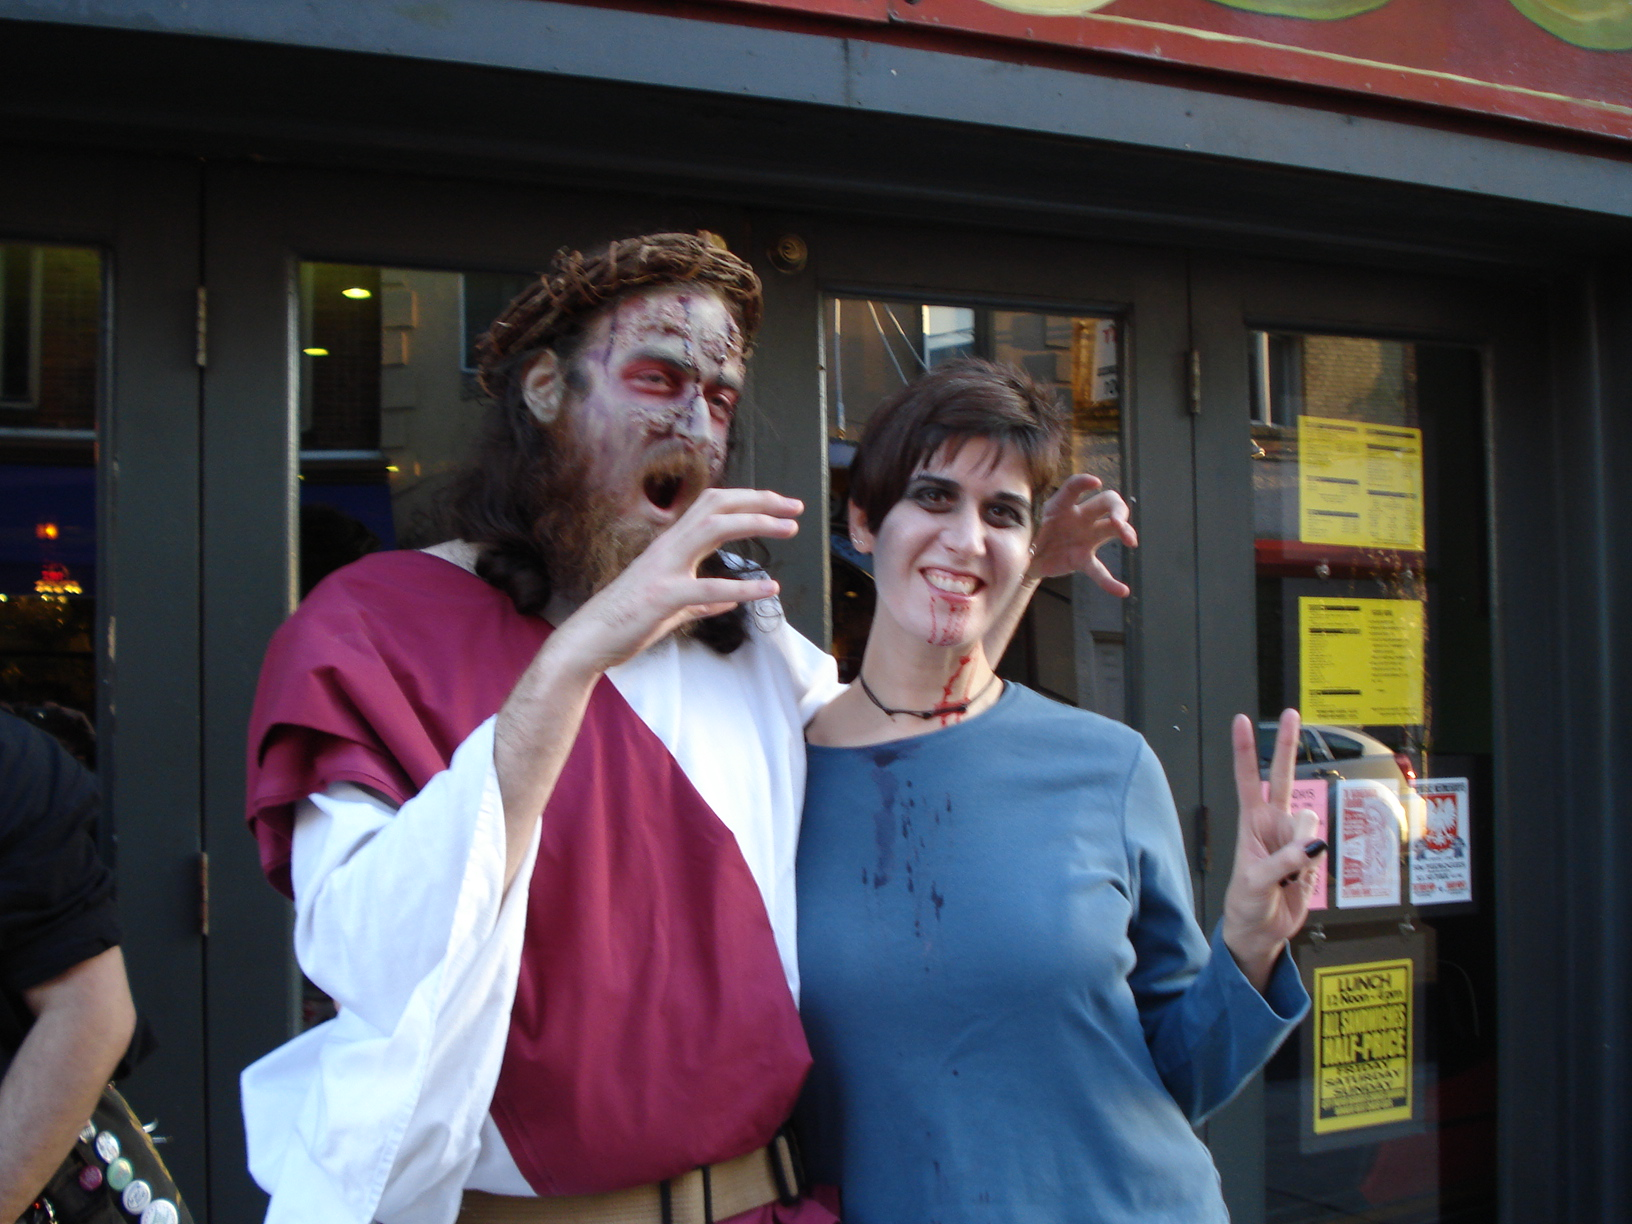 I found Jesus! He didn't eat my brain, but he did steal Nicole's heart, I think...